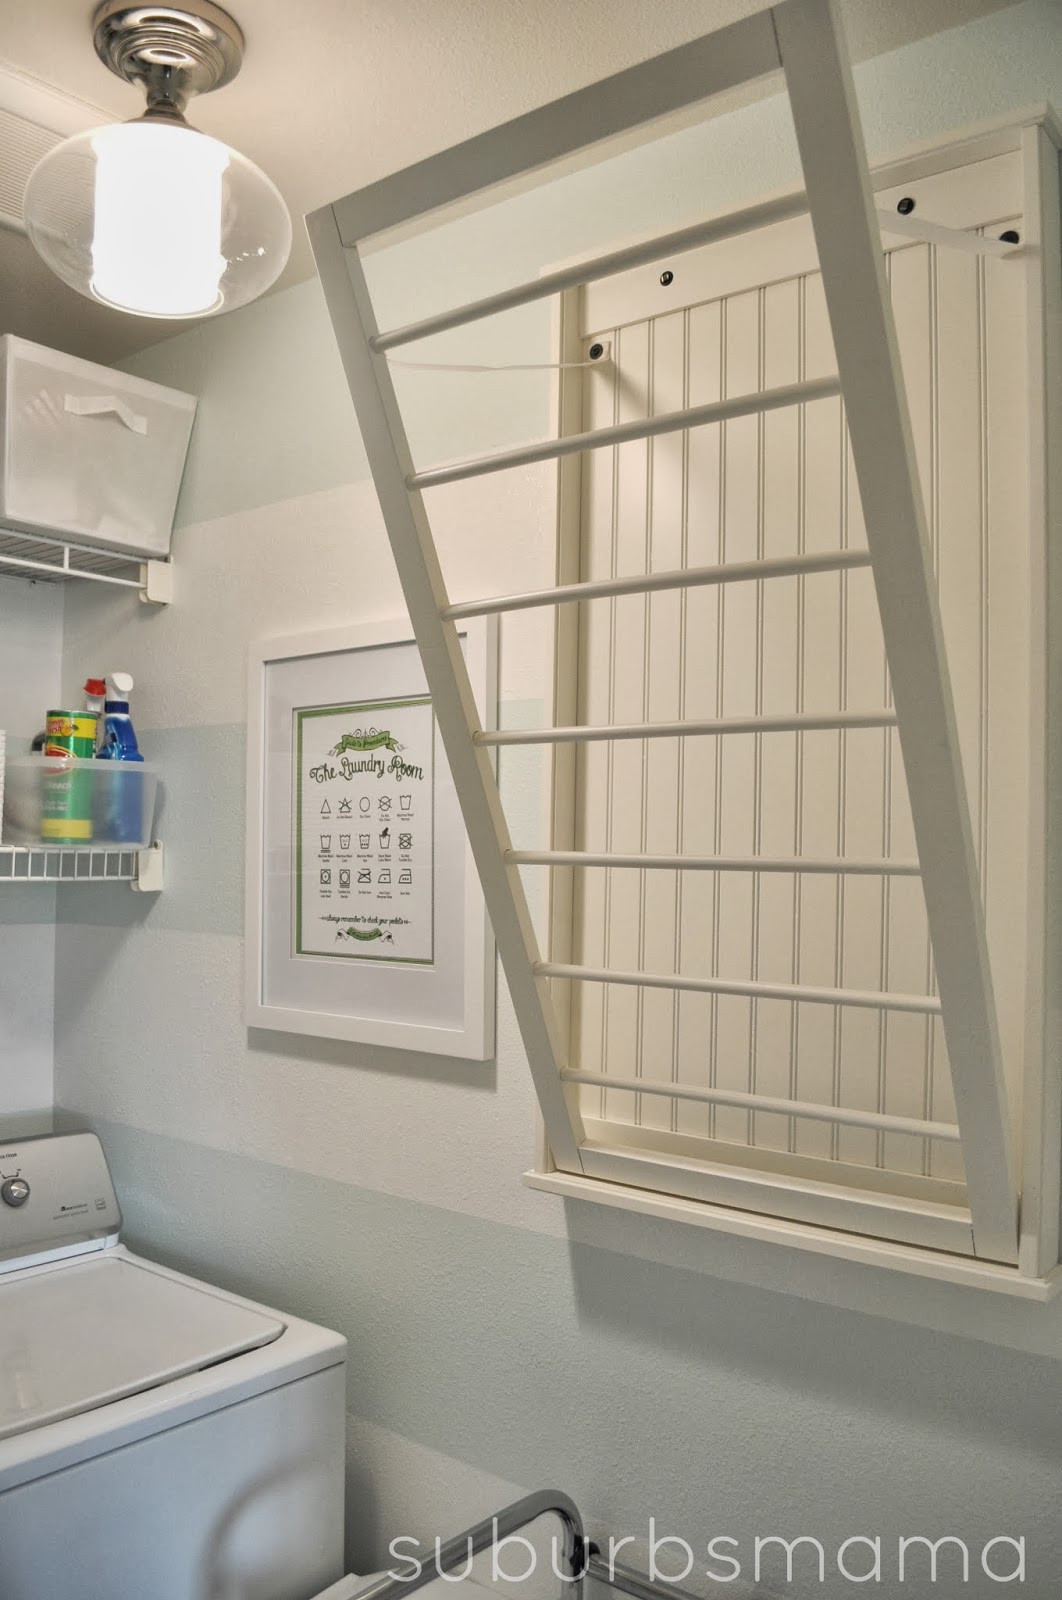 Best ideas about Laundry Room Rack . Save or Pin Suburbs Mama Laundry Room Makeover Now.